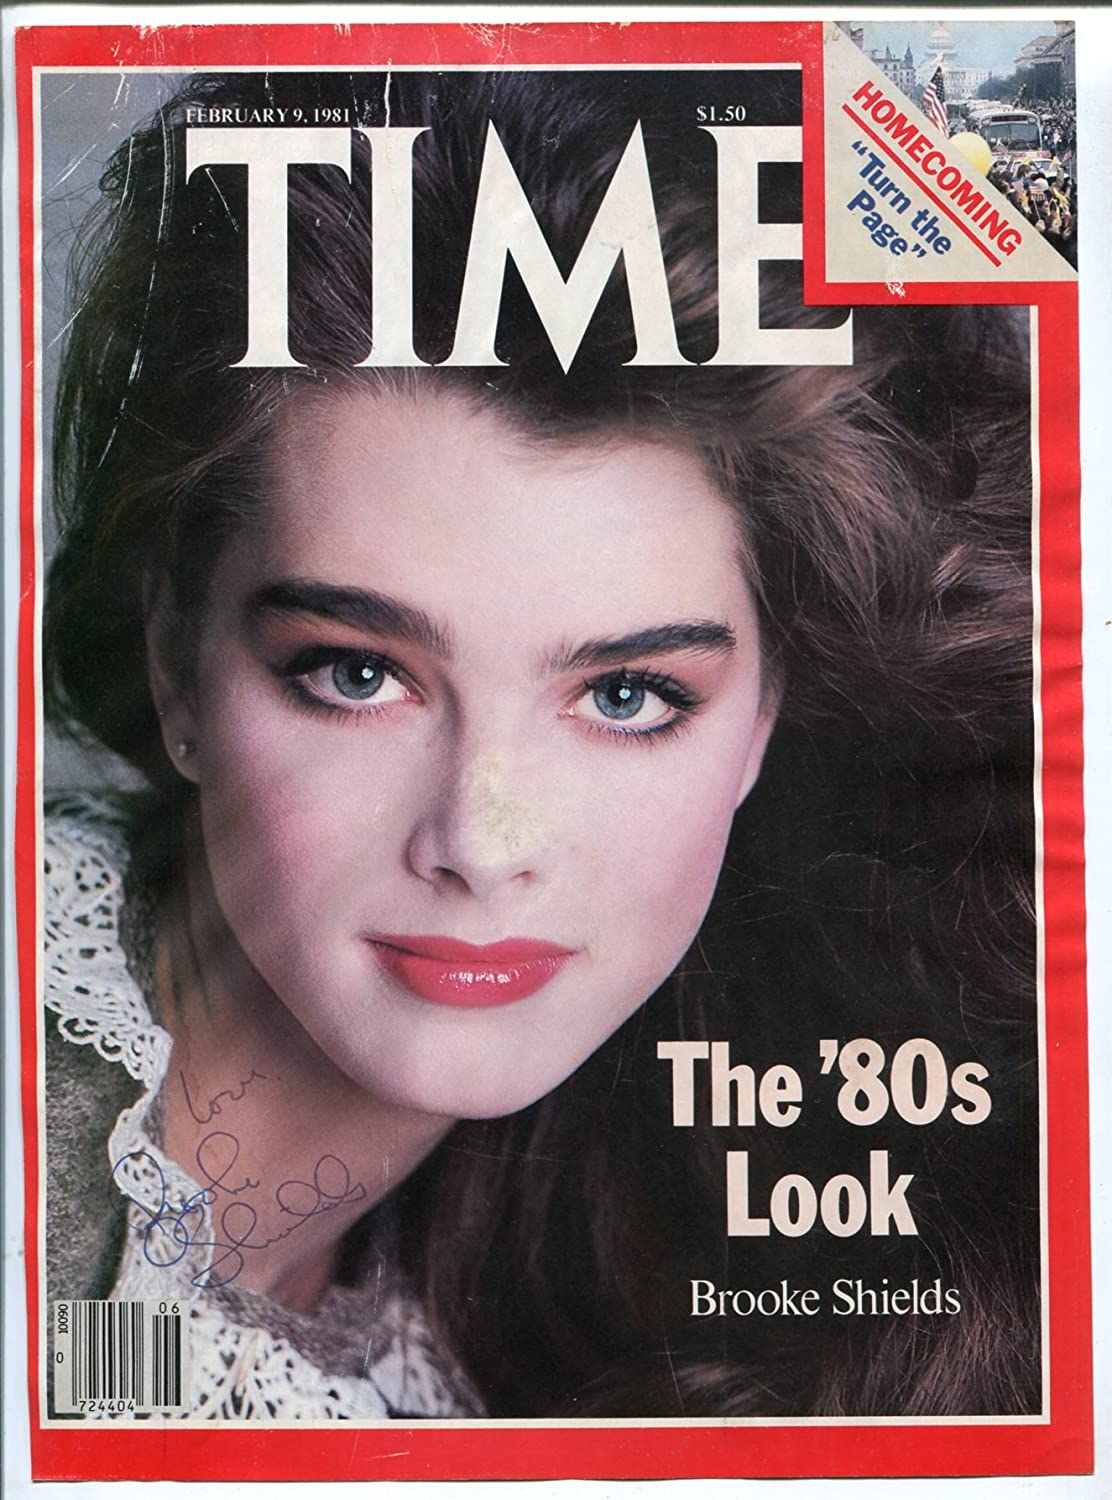 Price reduction Brooke Shields - Autographed Cover-Time Magazine- 1981-Cov 9 Feb Cheap mail order shopping